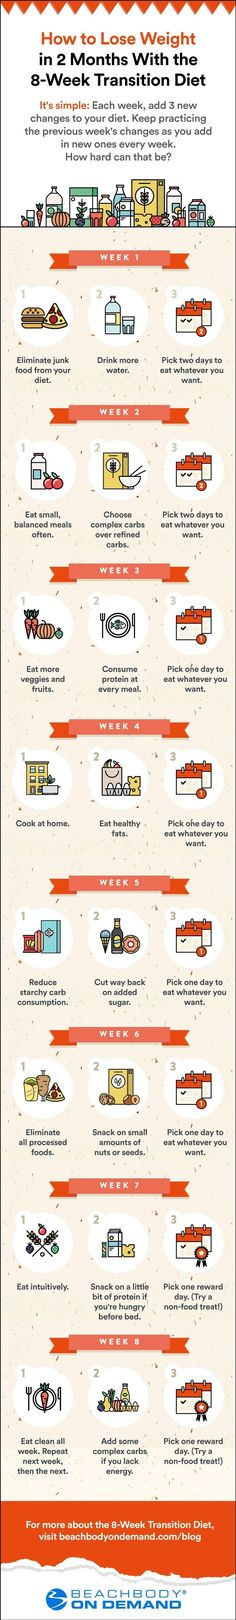 Try this transition diet to ease into your weight loss goals by making small changes each week. weight loss tips // healthy eating // get fit // meal prep // diet tips // lose weight fast // Beachbody // Beachbody Blog